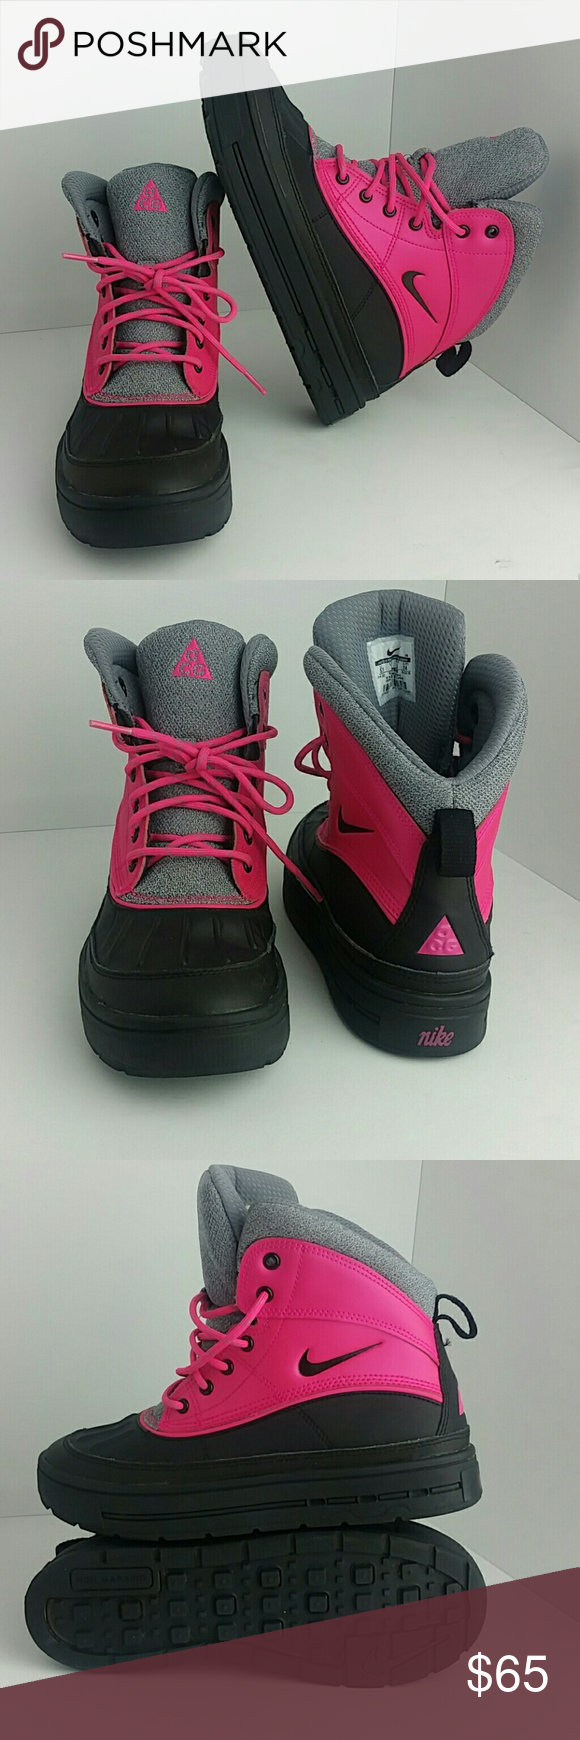 NIKE ACG WOODSIDE WOMEN YOUTH BOOT VERY CLEAN INSIDE-OUT THIS IS A YOUTH bfc1f197a